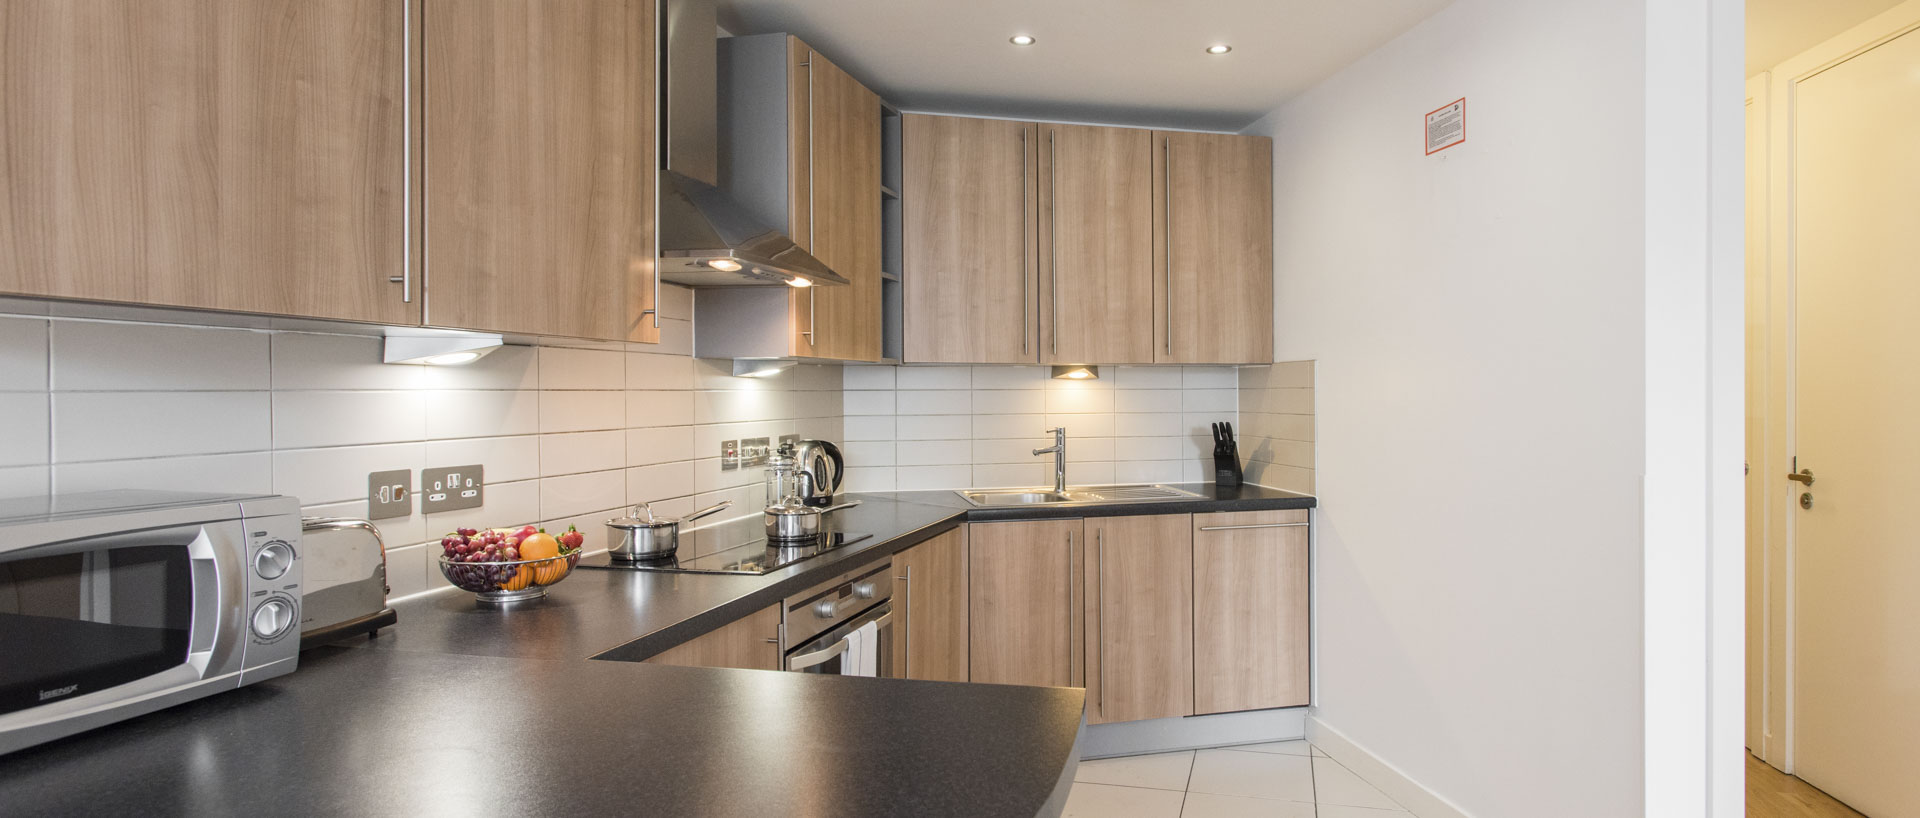 family serviced apartments city centre accommodation premier